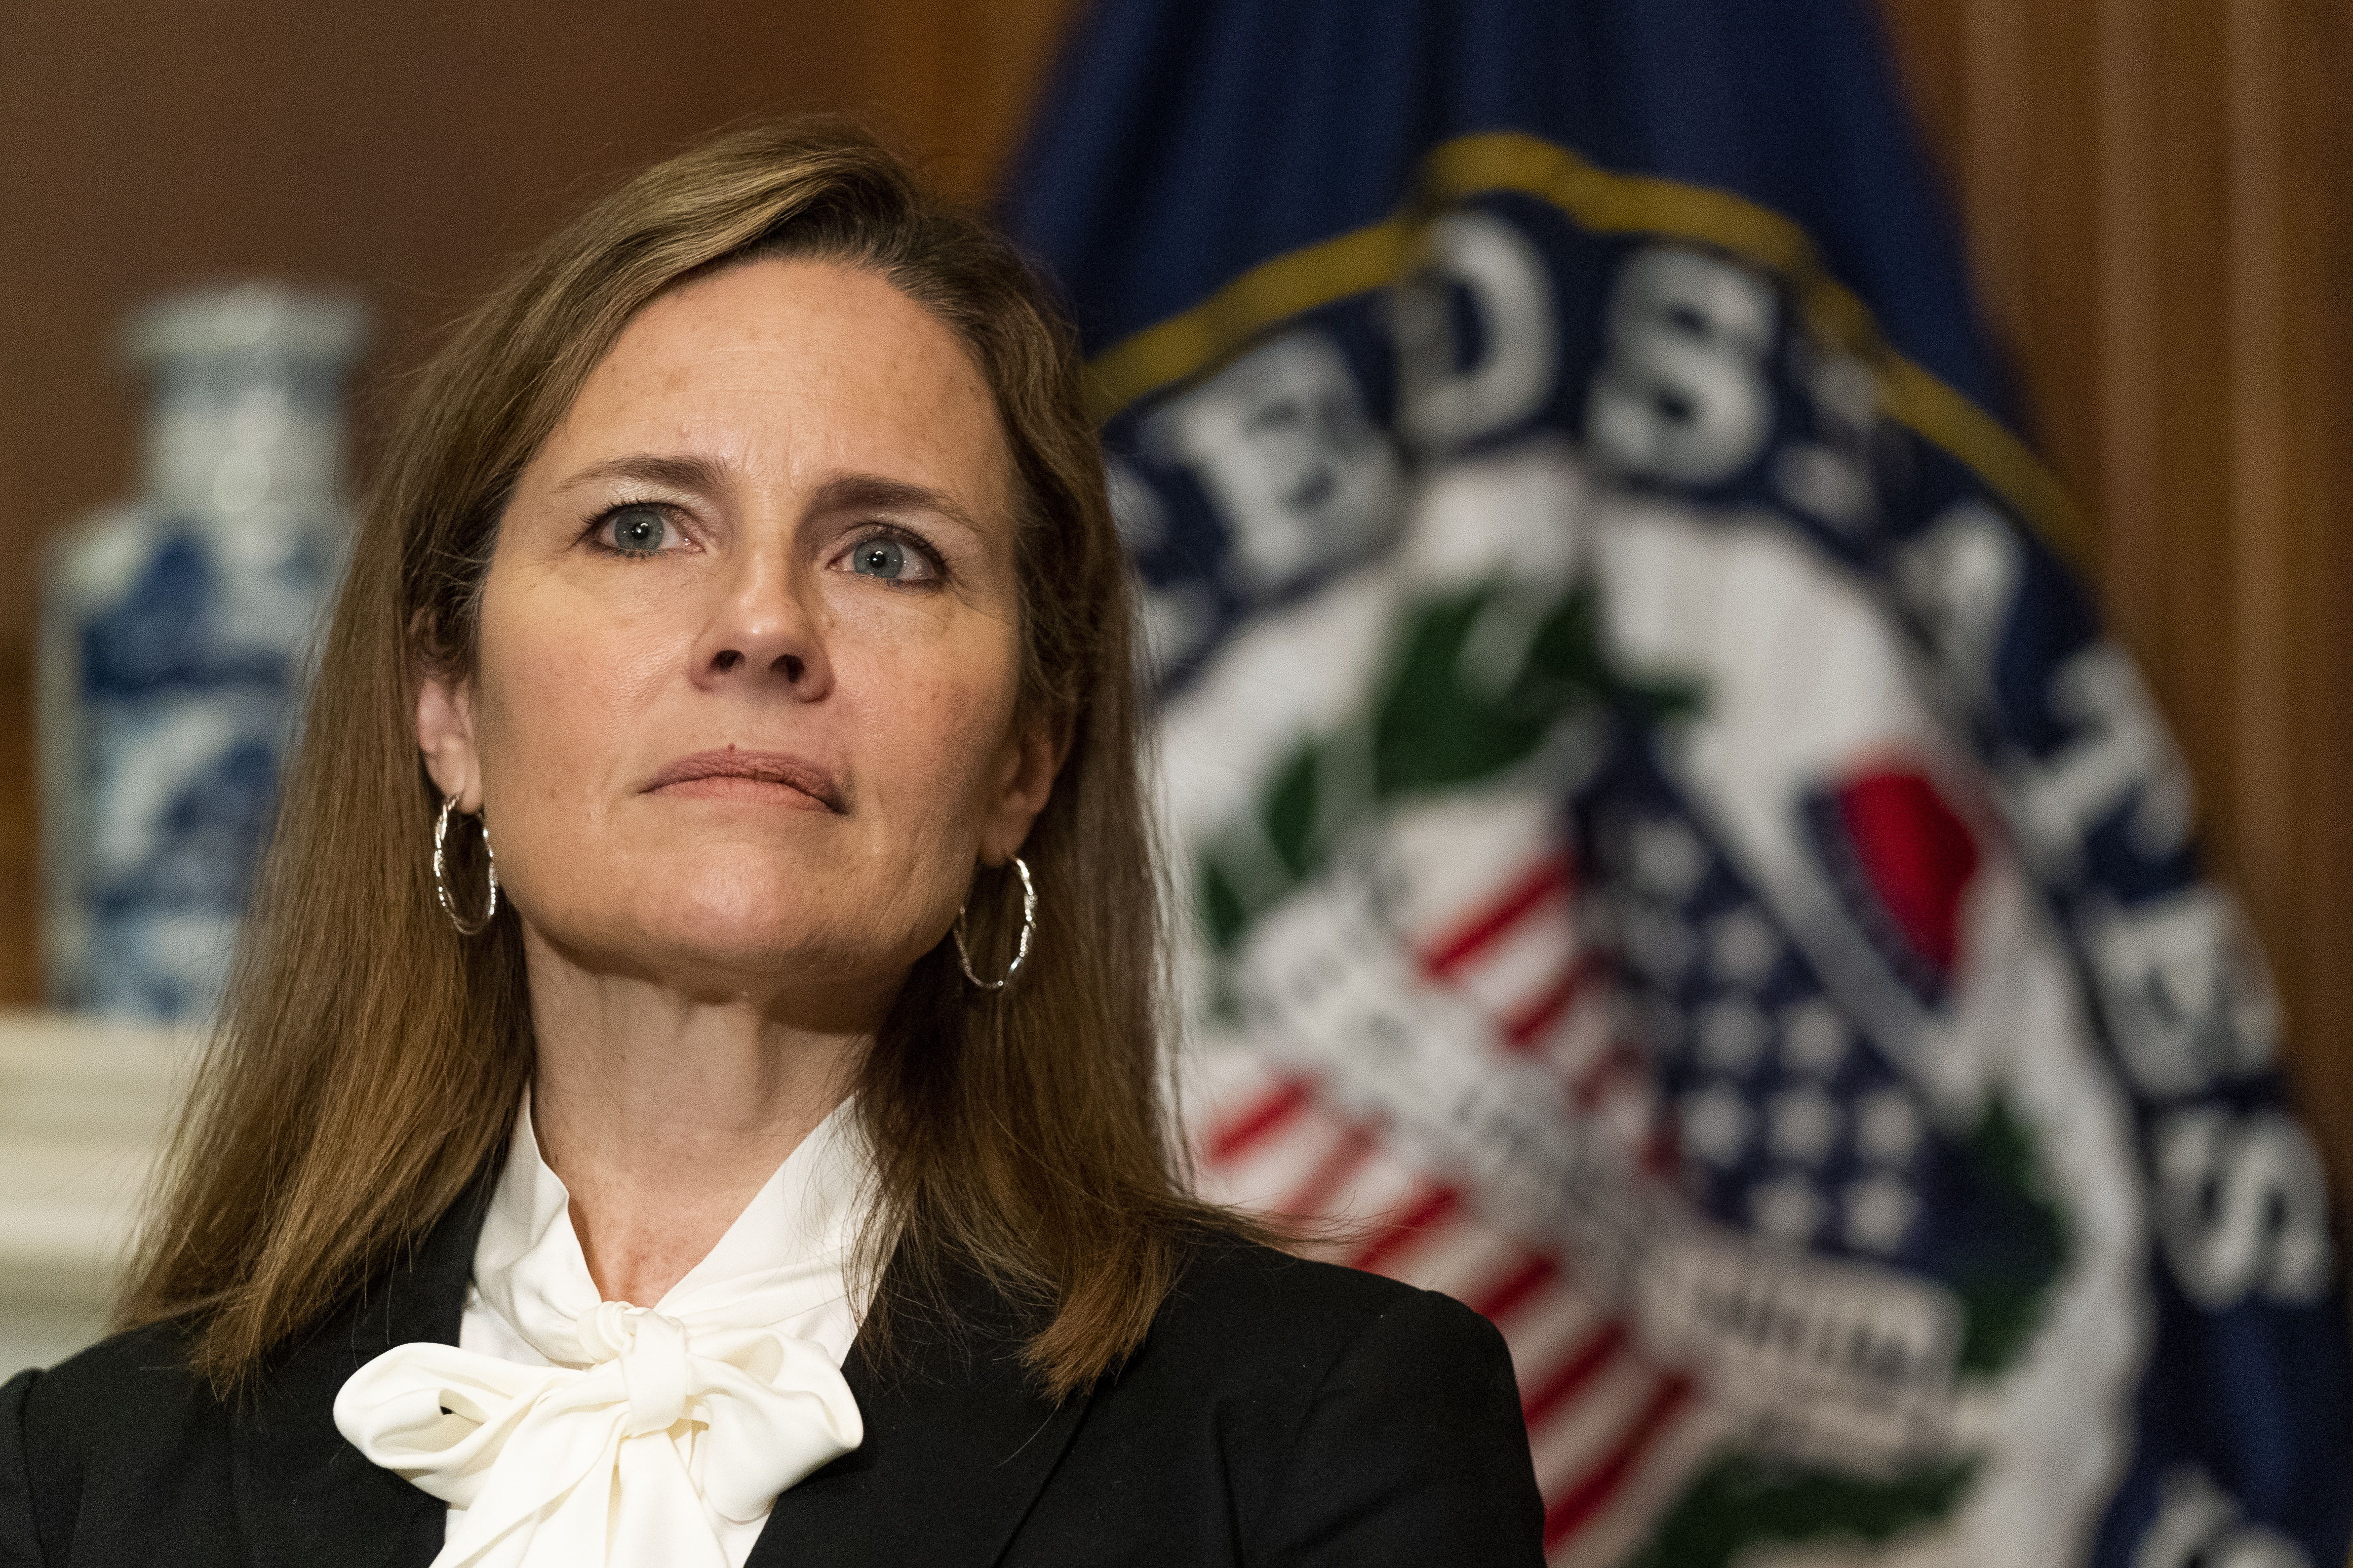 Supreme Court nominee Judge Amy Coney Barrett listens as Sen. Jerry Moran, R-Kan., not shown, speaks during their meeting on Capitol Hill, Thursday, Oct. 1, 2020, in Washington.